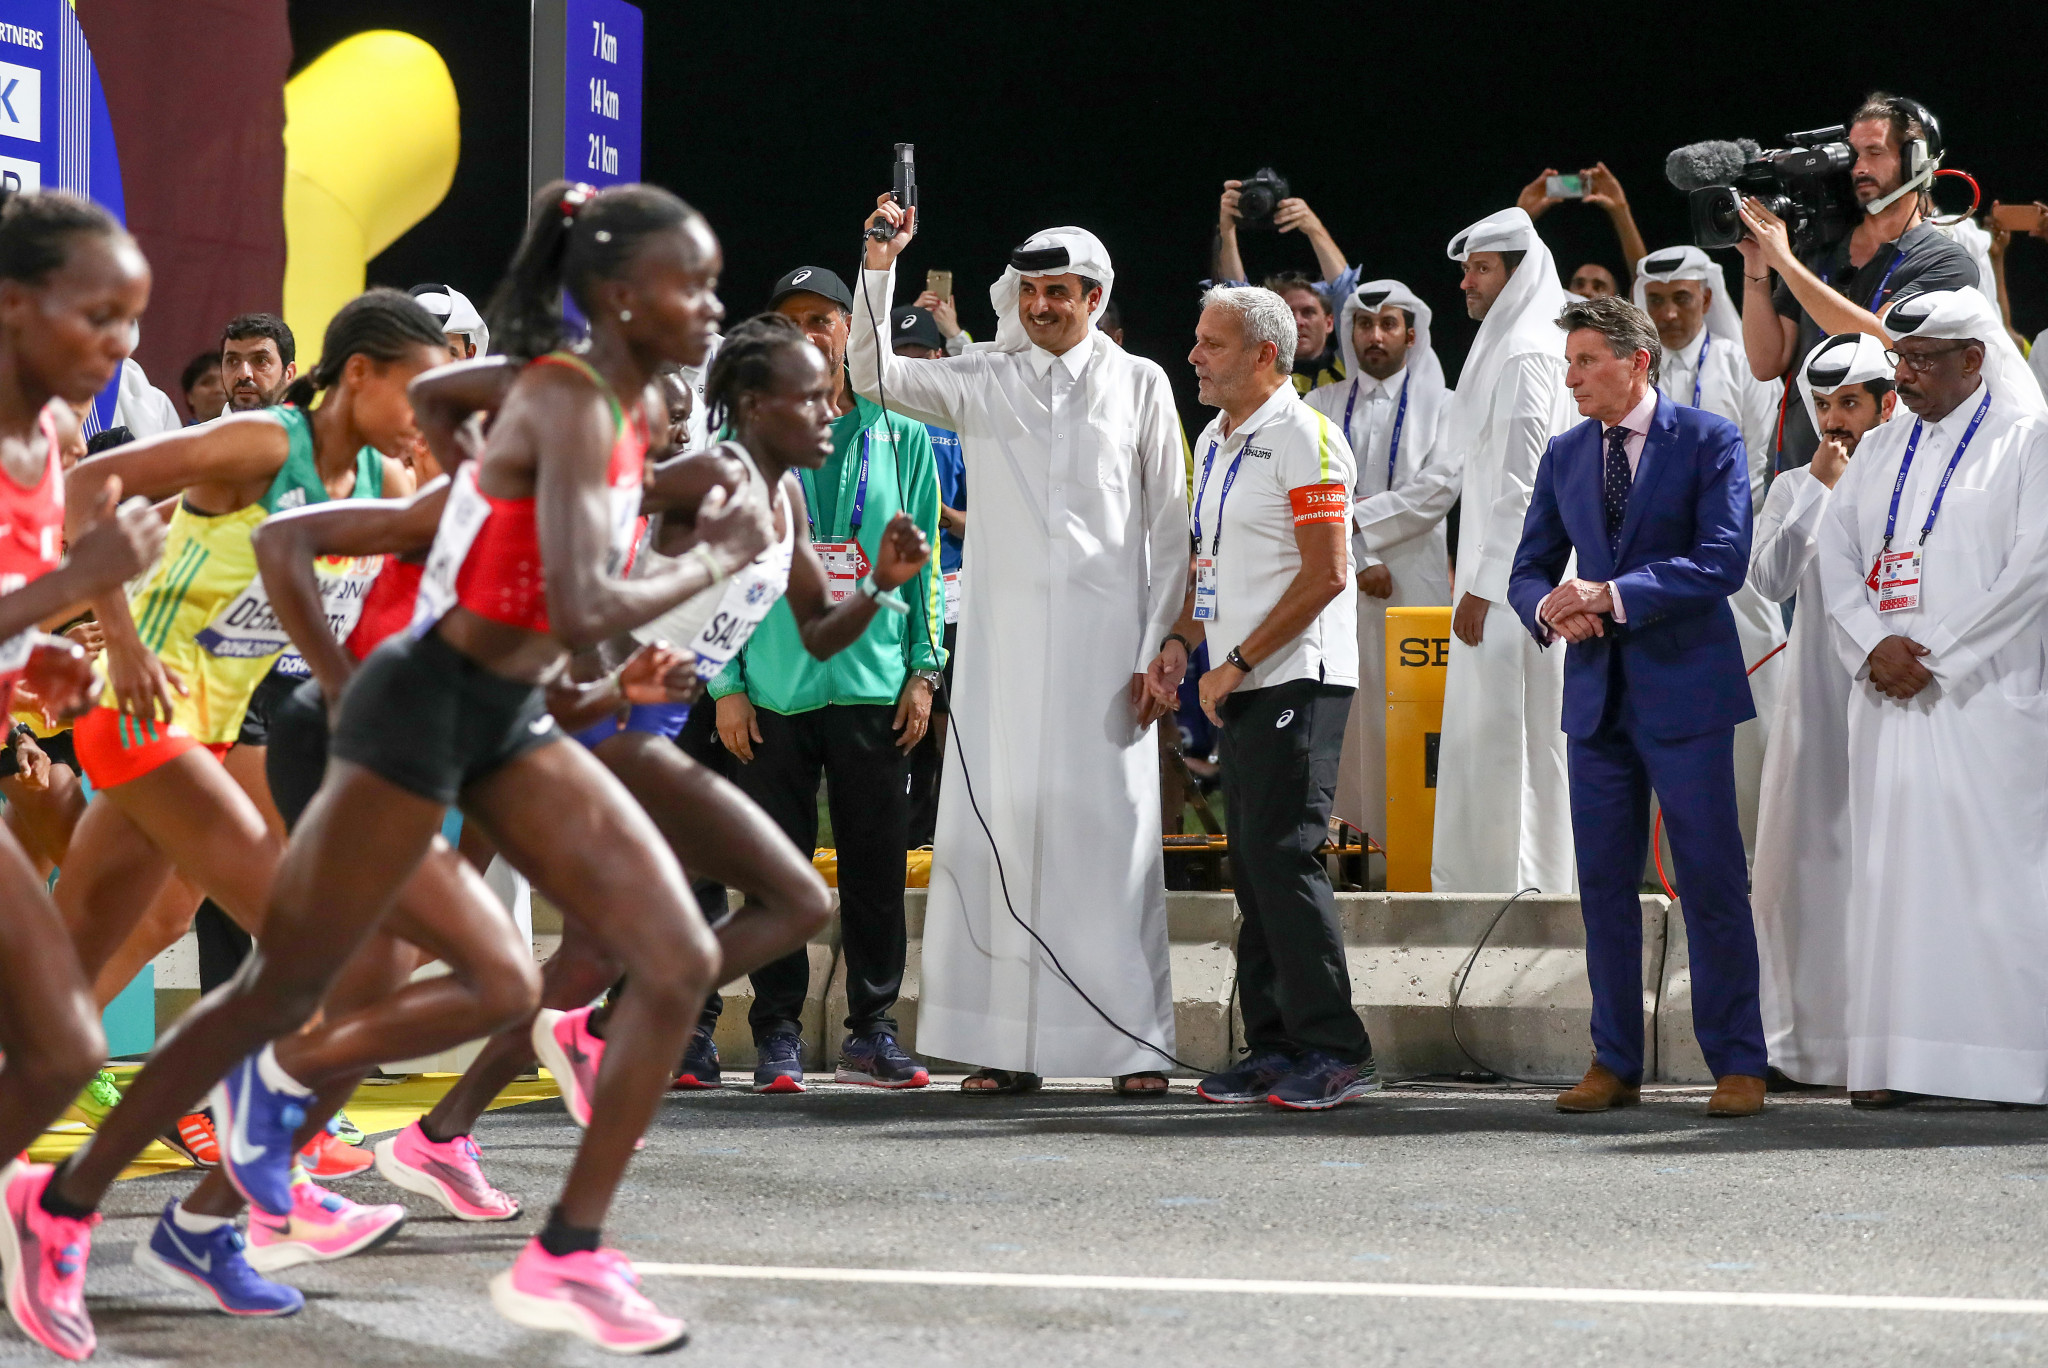 The marathon started at midnight with the runners set on their way by the Emir of Qatar in a race that the winner did not cross the finishing line until after 2.30am ©Getty Images